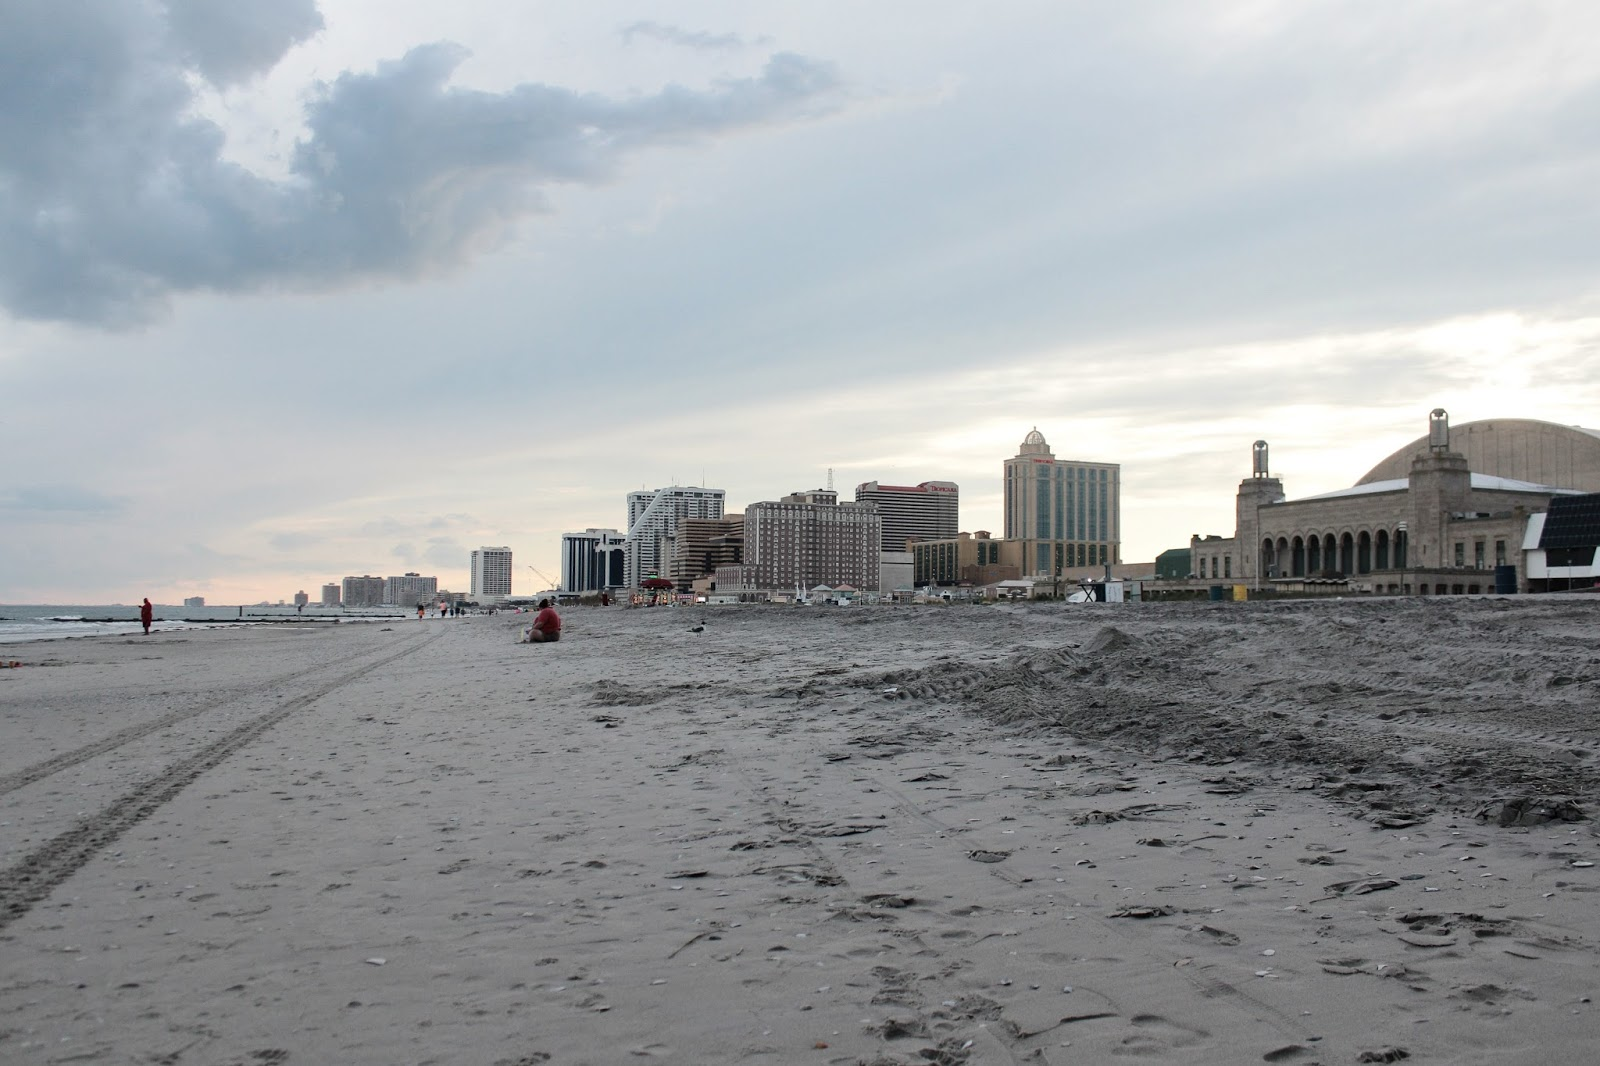 travel tips, five things to do in atlantic city, travel blogger, atlantic city, casino, travel diaries, myriad musings 2017